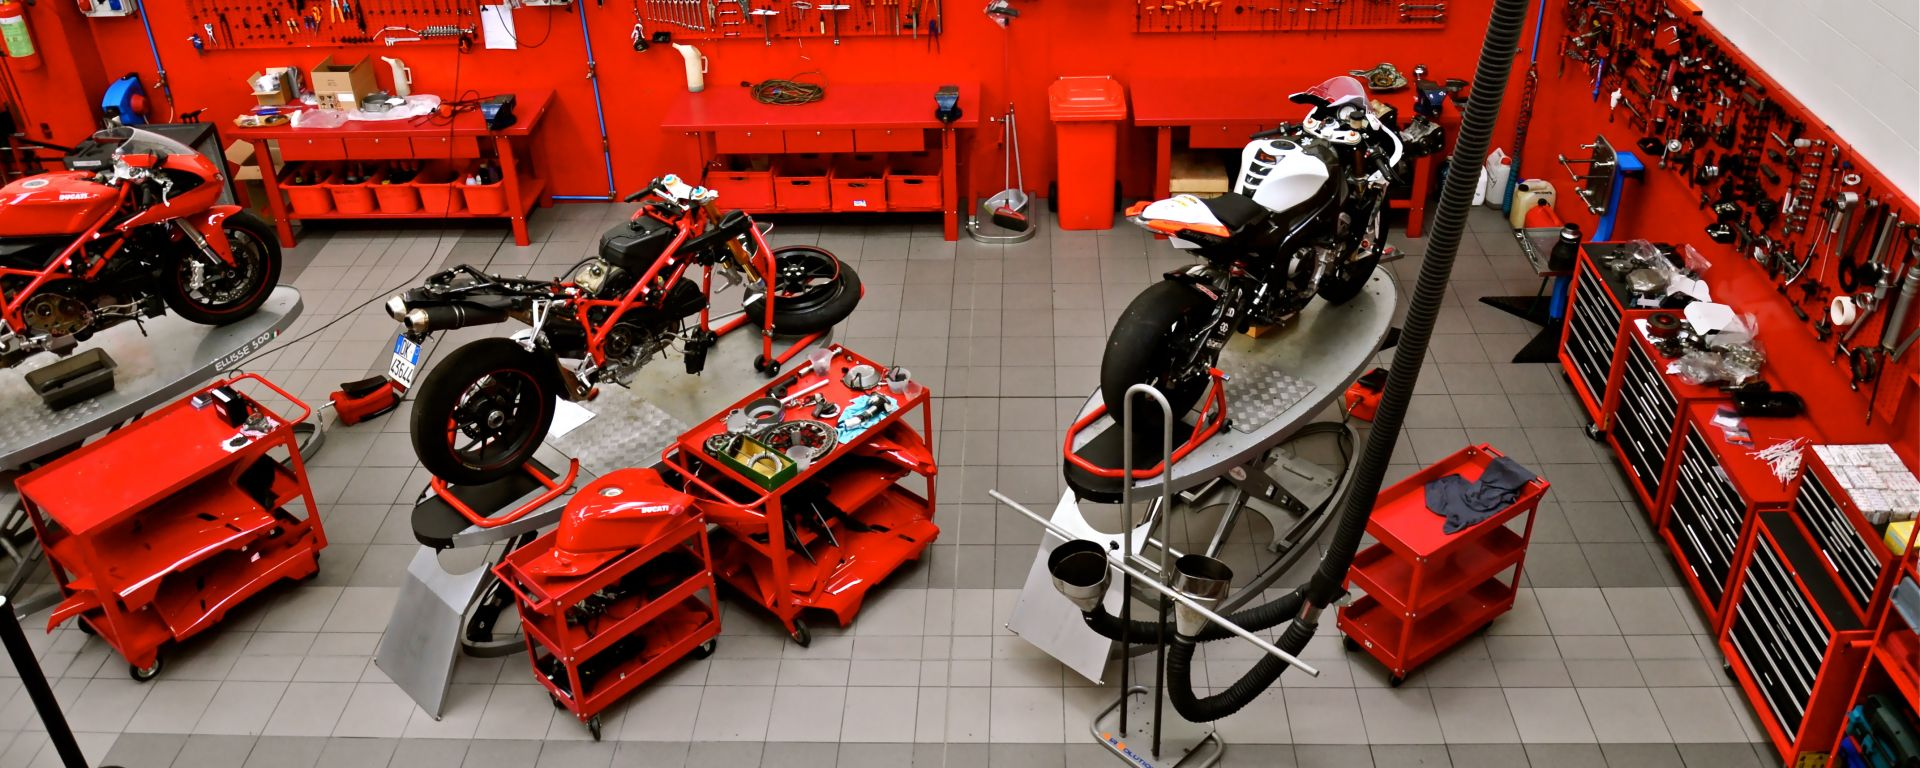 Pompone usato? No problem, torna il Ducati Service Warm Up